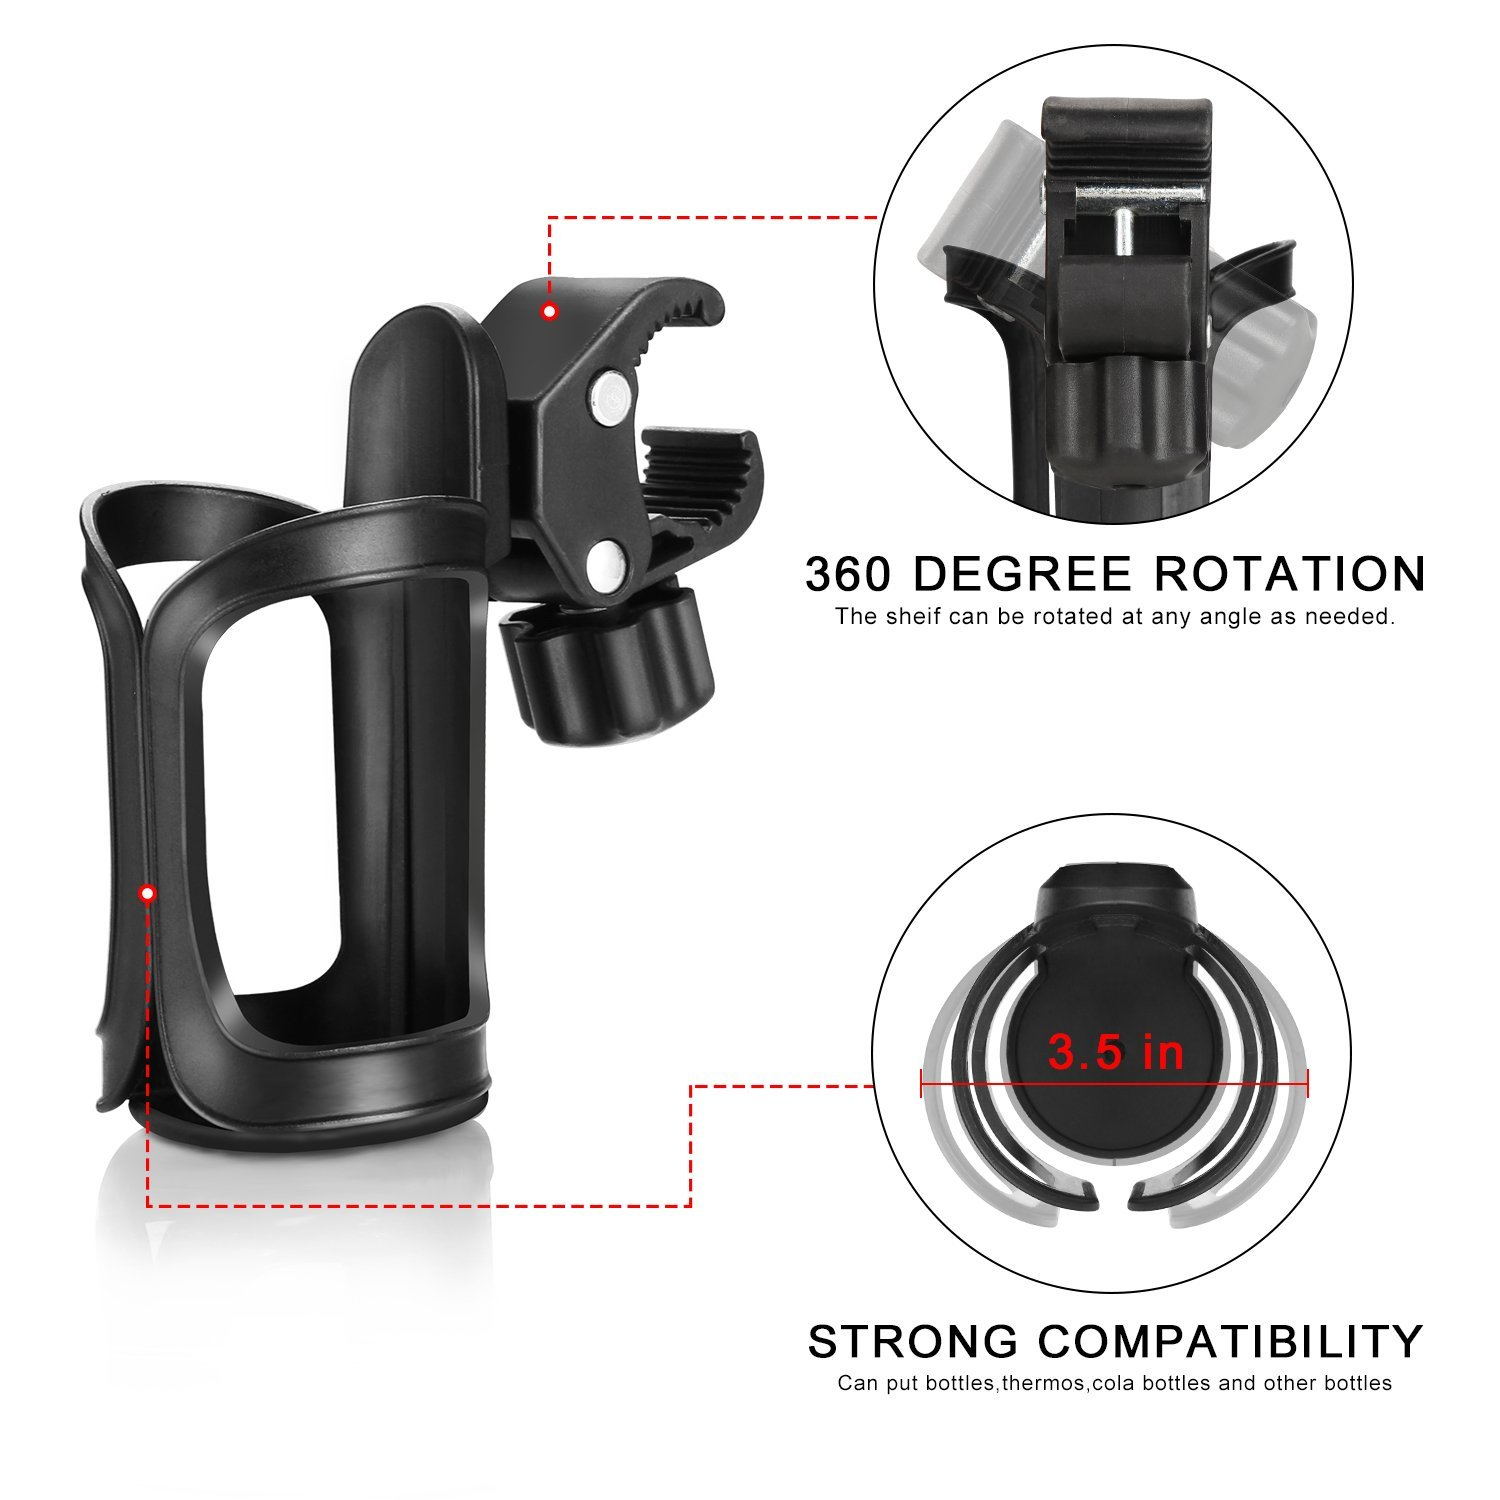 Accmor Bike Cup Holder/Stroller Bottle Holders, Universal 360 Degrees Rotation Antislip Cup Drink Holder for Baby Stroller/Pushchair, Bicycle, Wheelchair, Motorcycle, Tools Free, 2pack by accmor (Image #2)